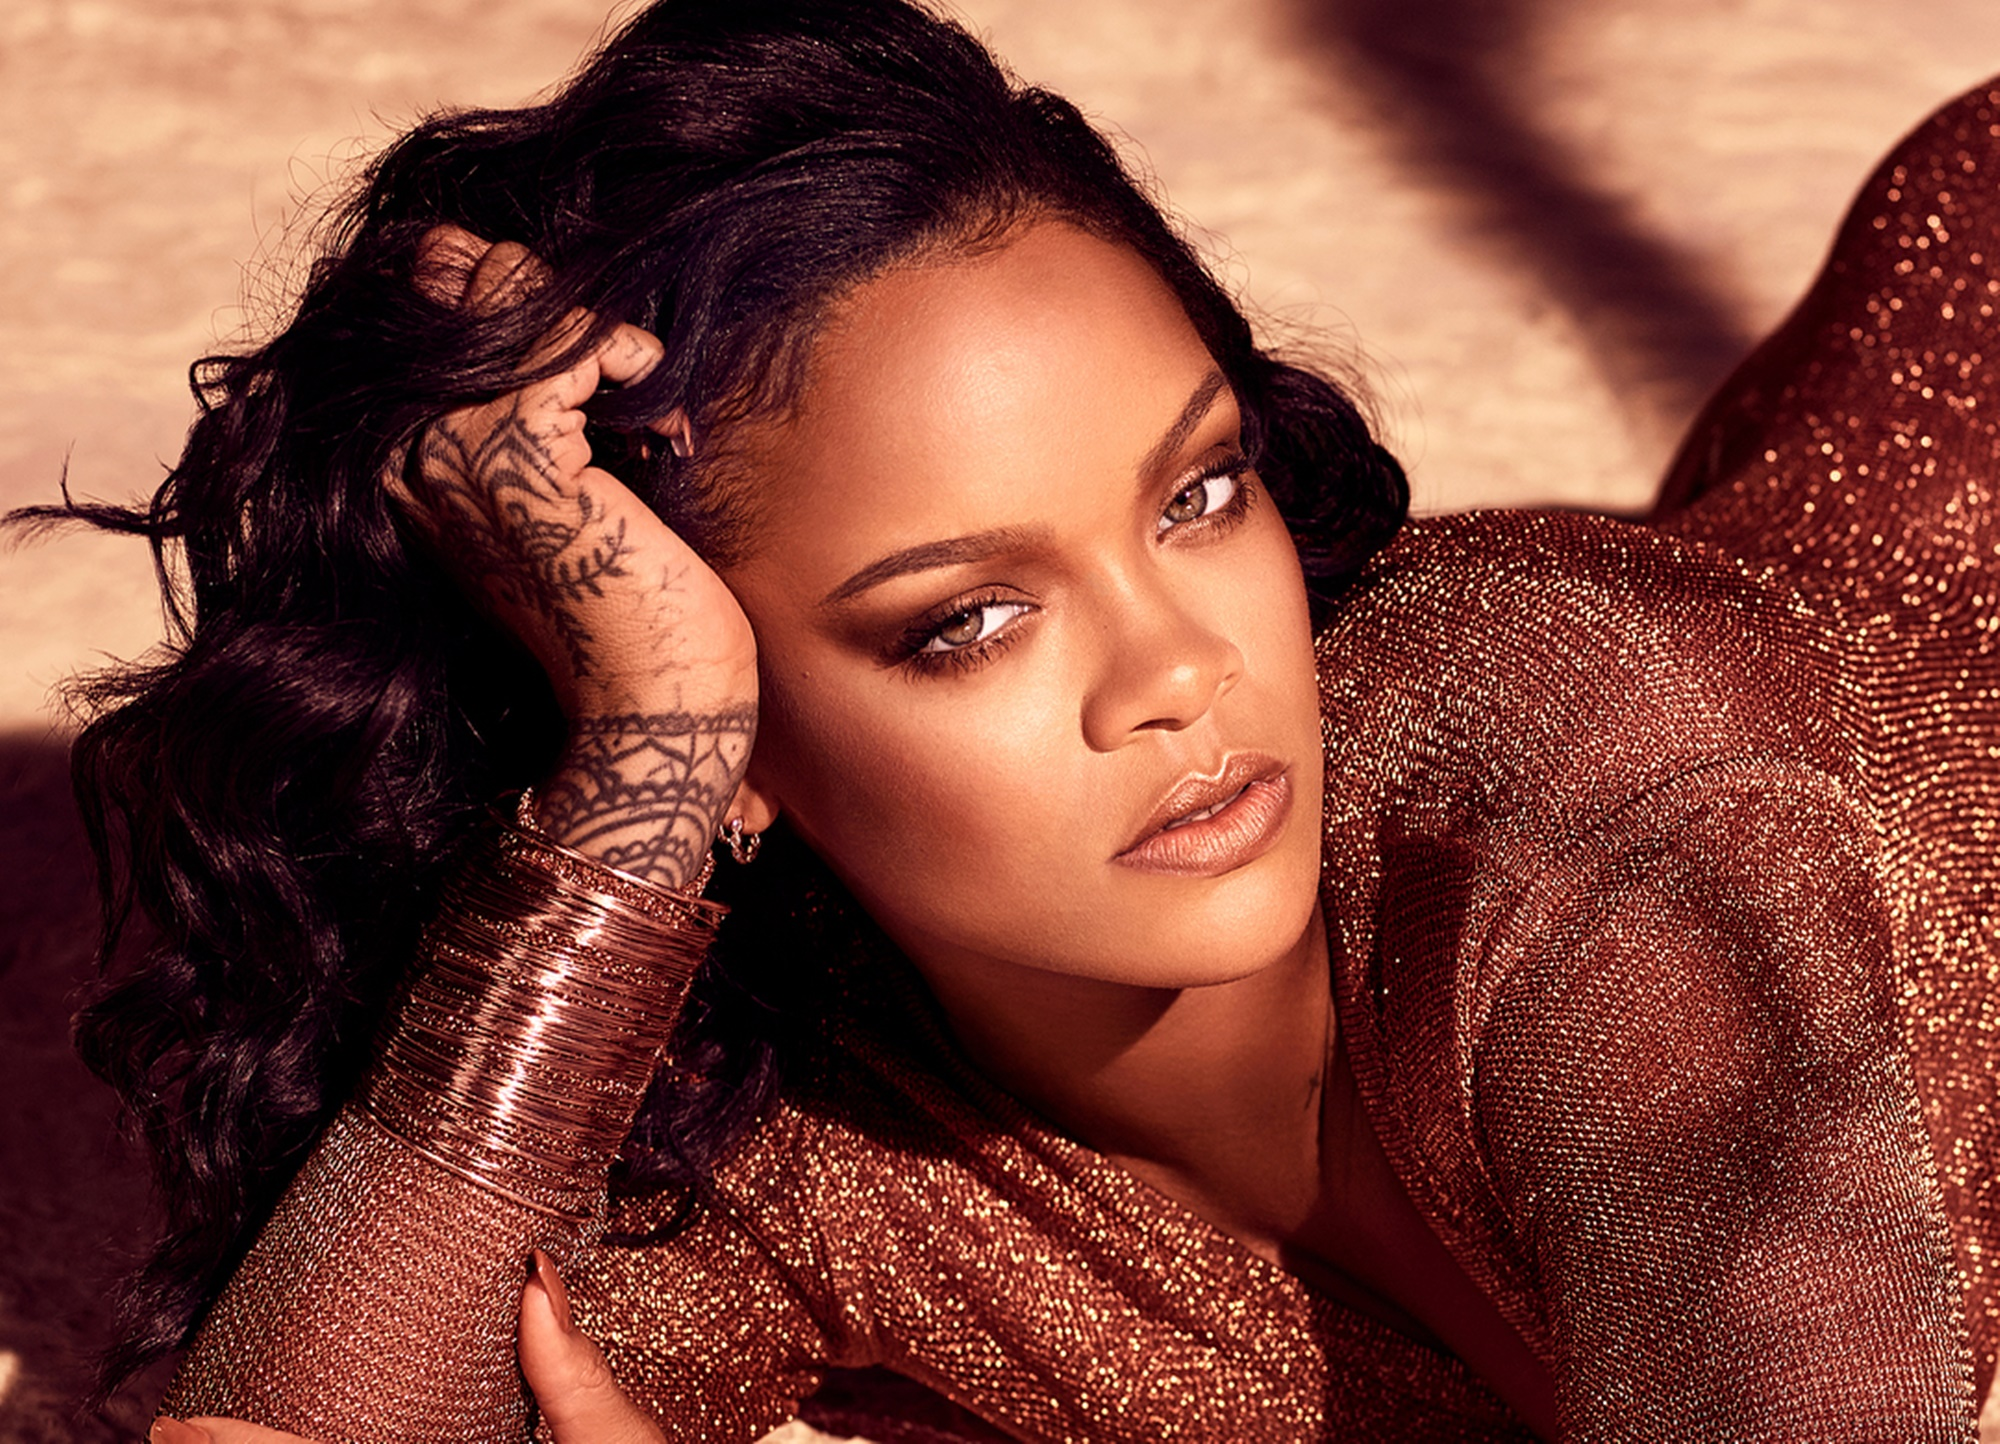 rihanna-shows-all-natural-curves-in-seductive-new-photos